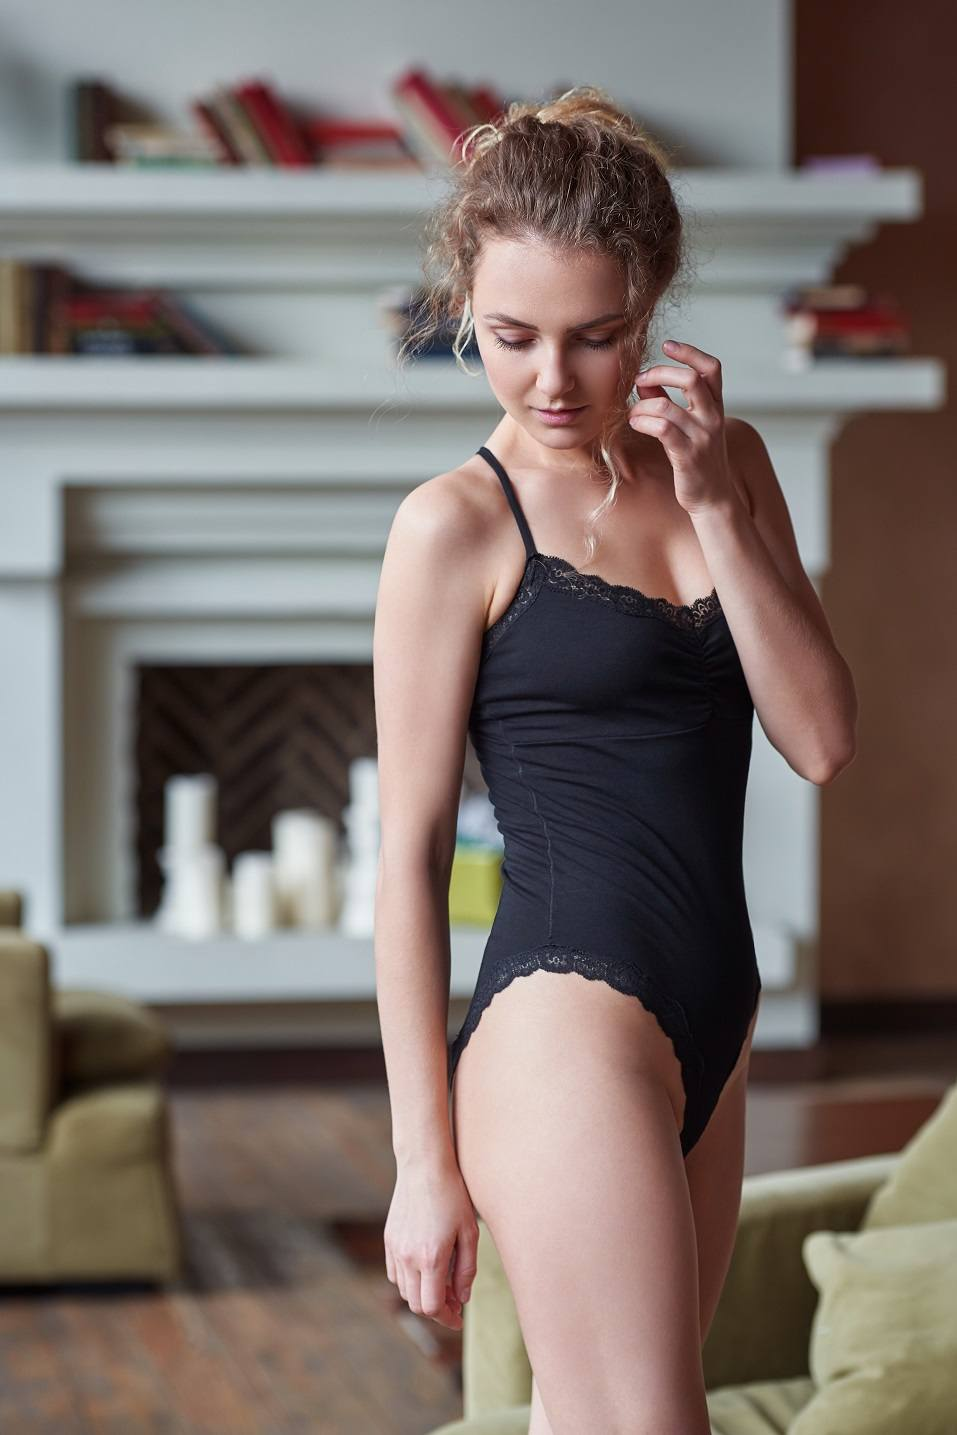 young blond sexy woman in a bodysuite